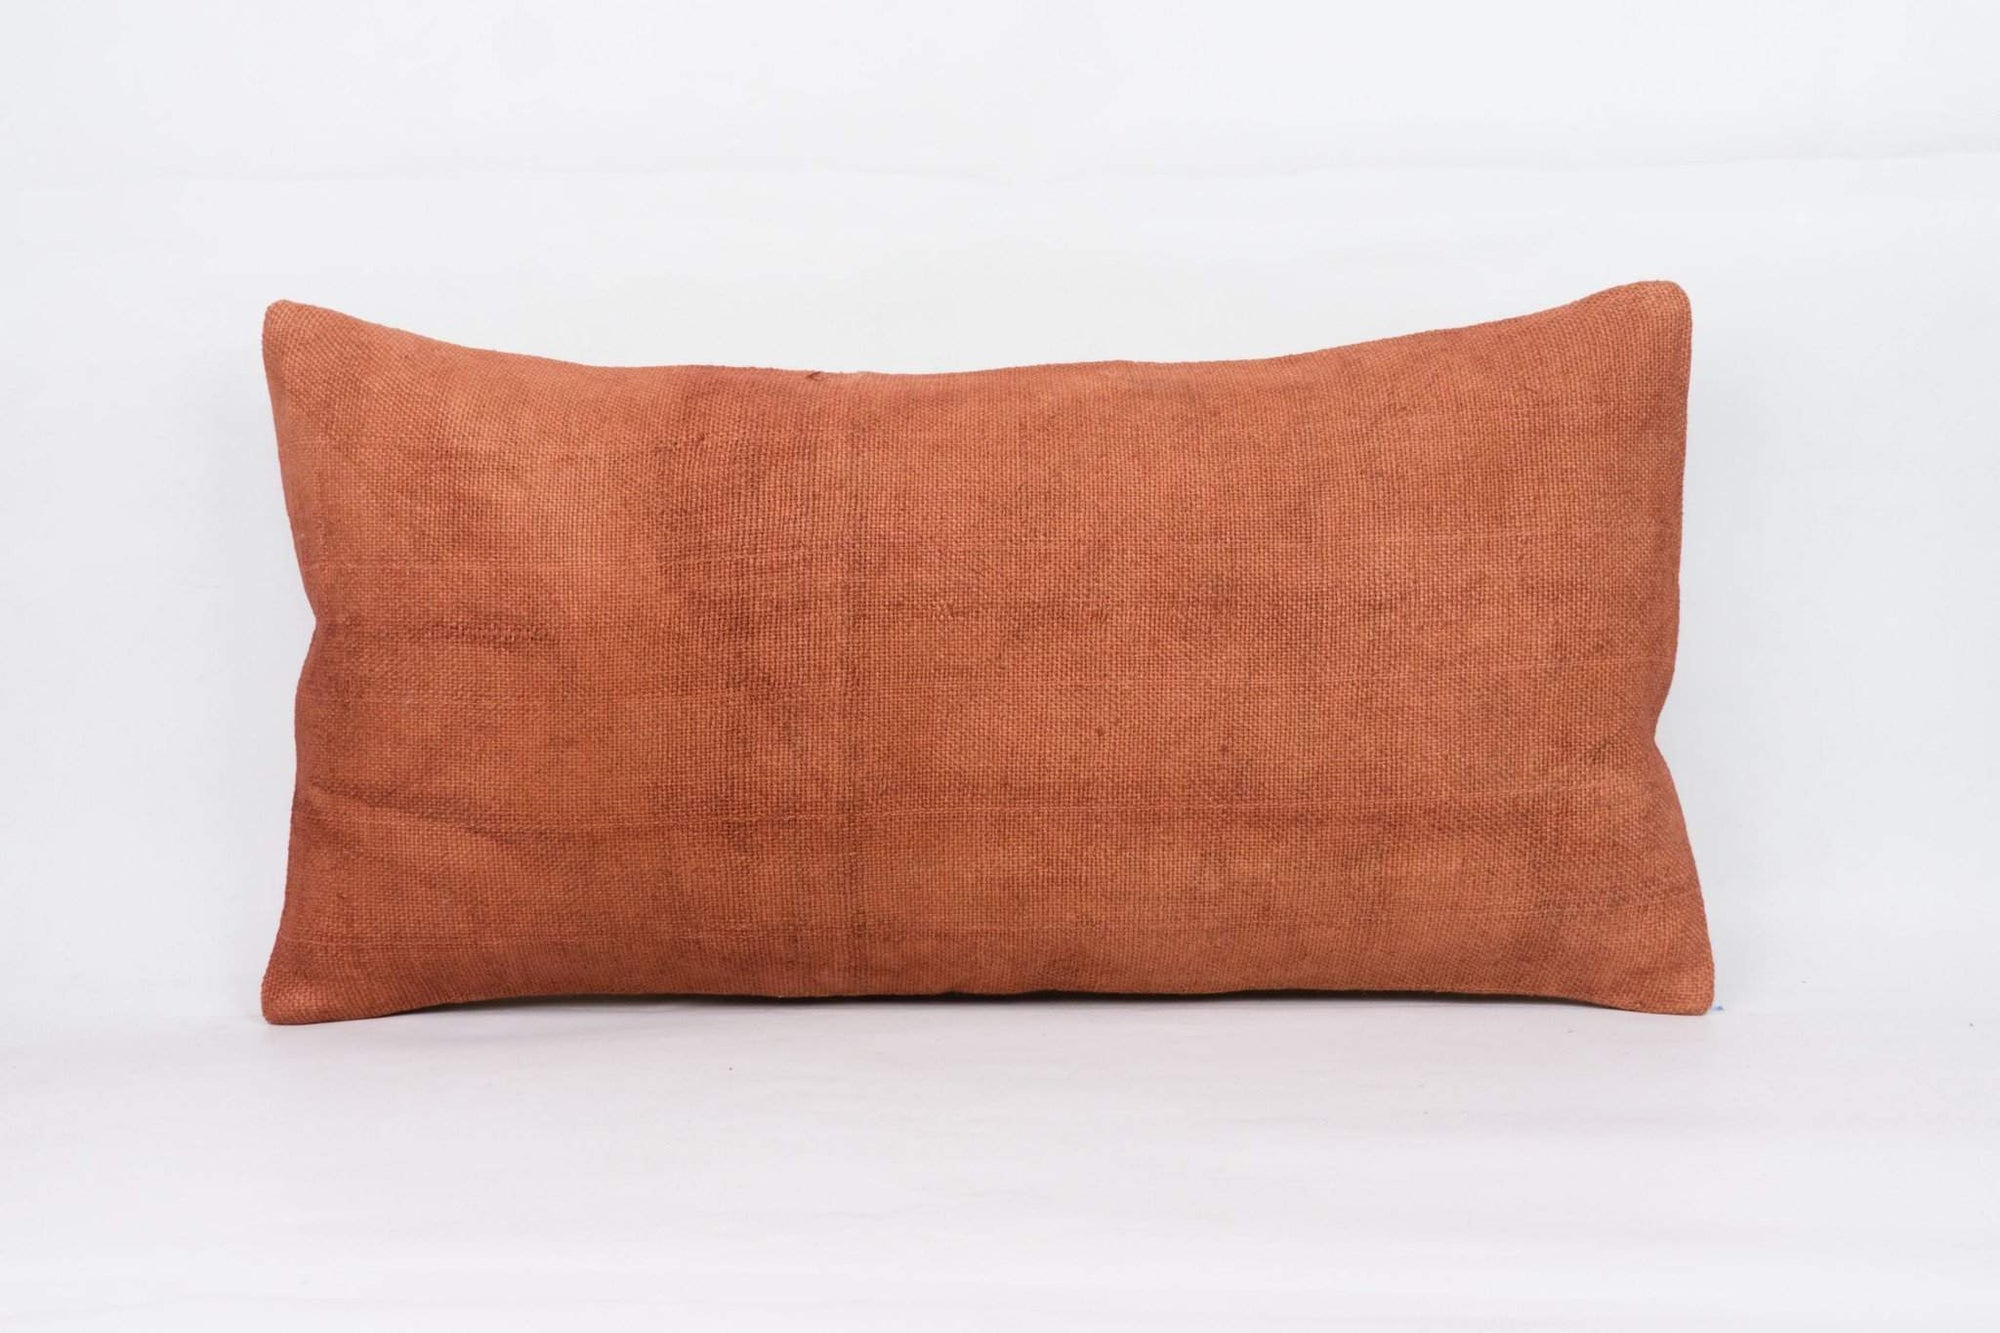 Plain Brown Kilim Pillow Cover 12x24 4208 - kilimpillowstore  - 1